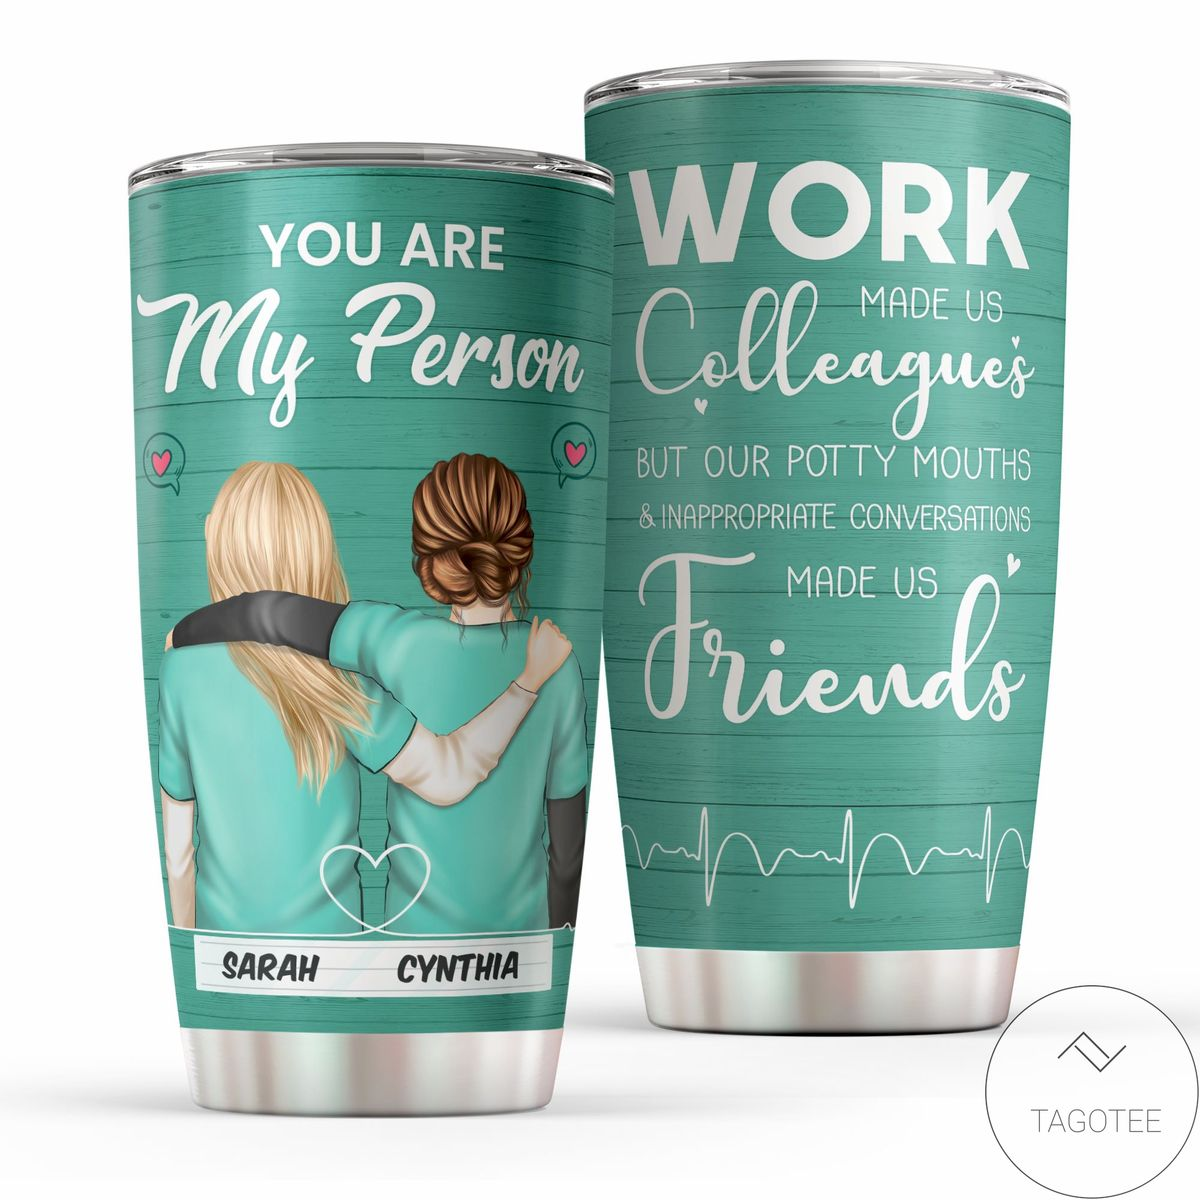 Personalized Nurse You Are My Person Work Made Us Colleagues Tumbler